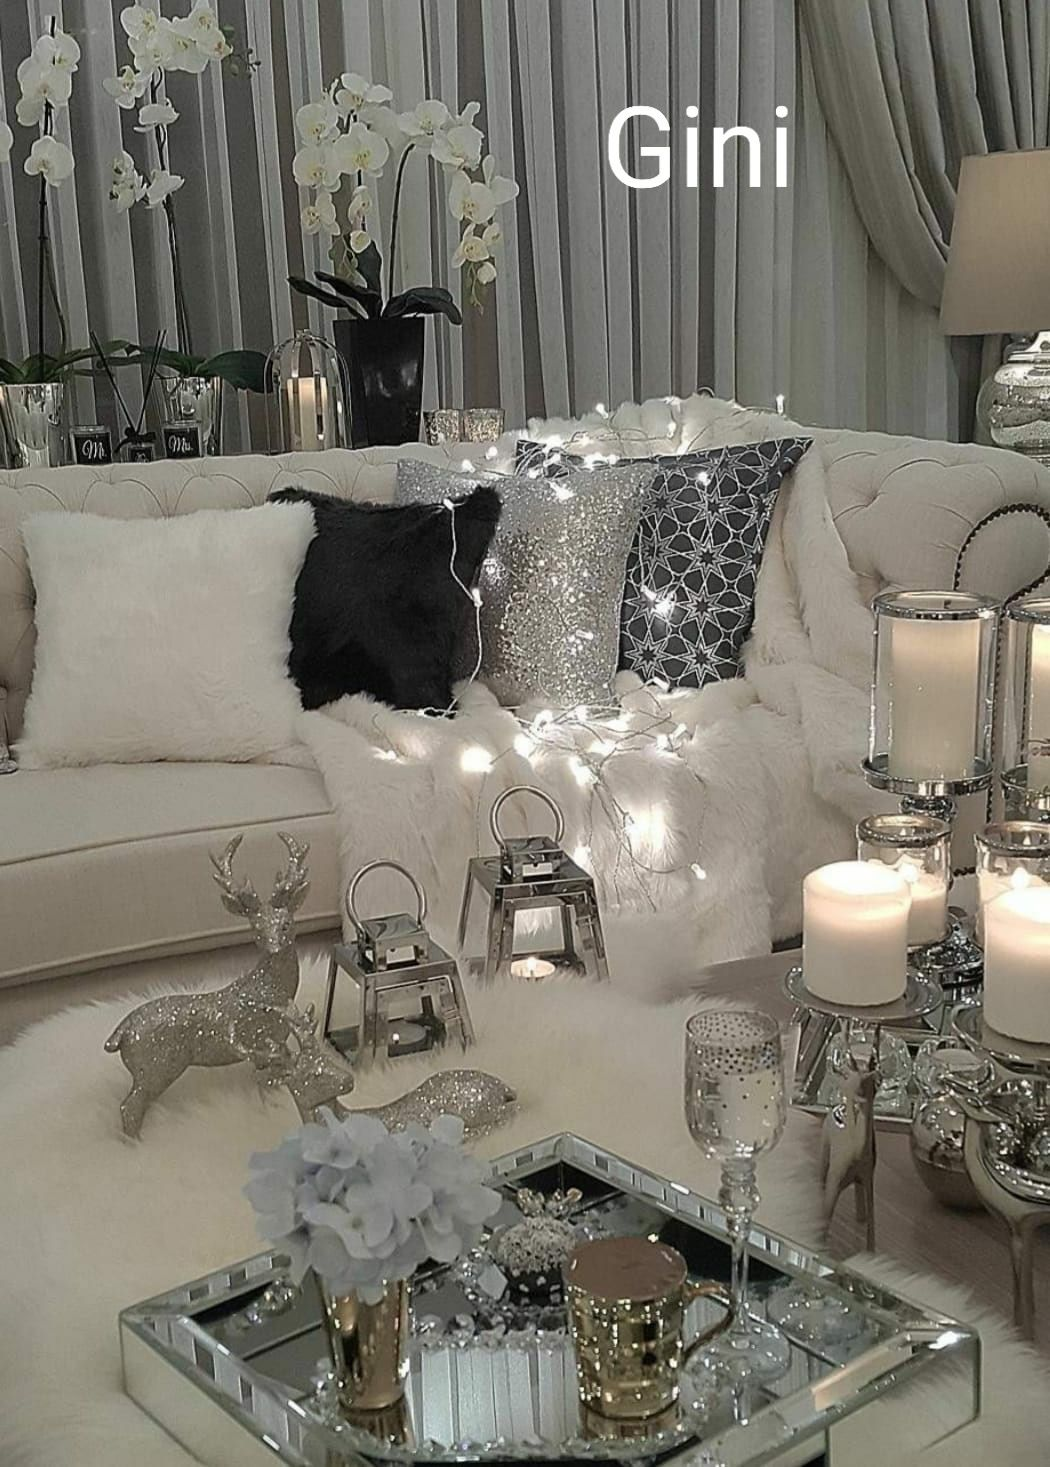 Pin By Milagros Rosa On Sala Winter Living Room Decor Modern Glam Living Room Winter Living Room #winter #living #room #ideas